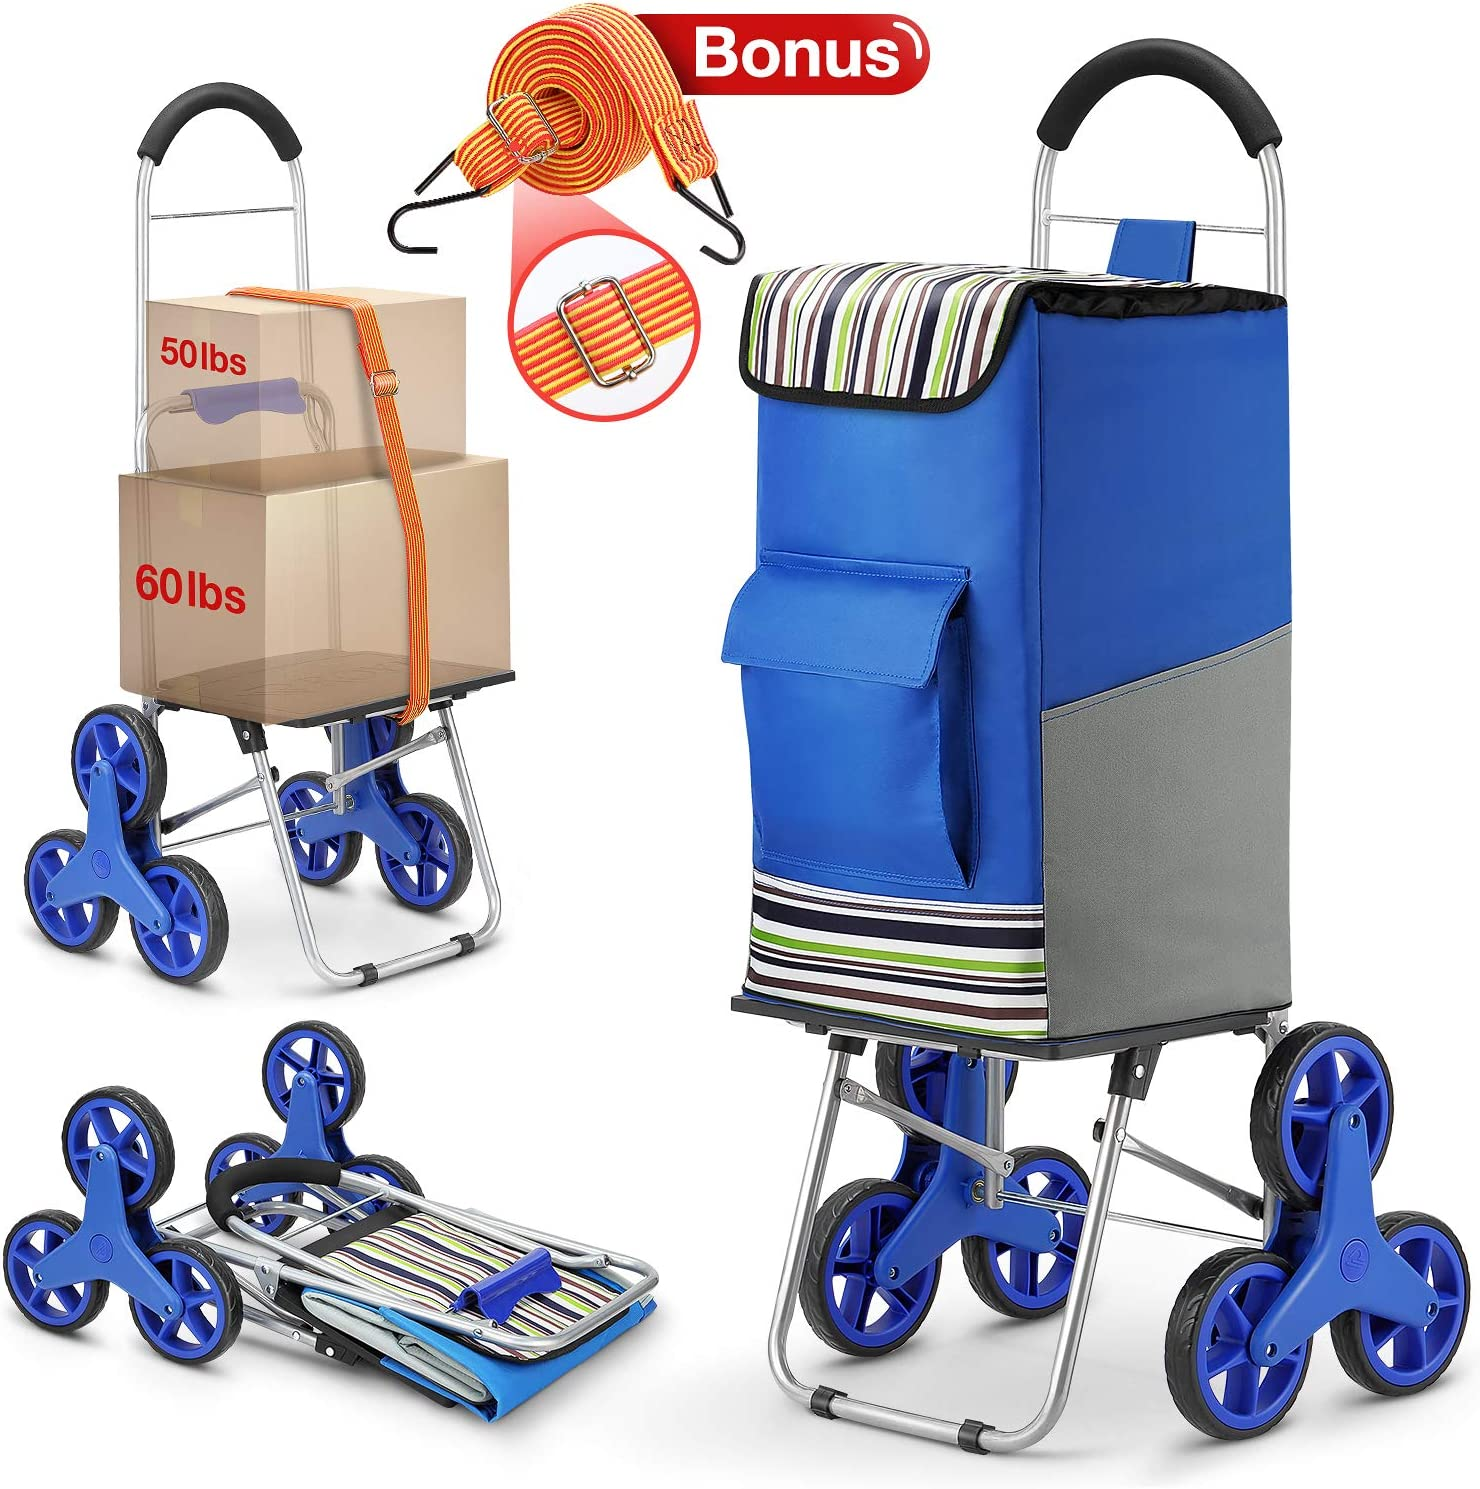 Color : Blue, Edition : Two Rounds Folding Shopping Cart 6-Wheel Stair Climbing Cart, Grocery Laundry Utility Cart,Sports Collapsible Folding Outdoor Utility Wagon, Utility Cart